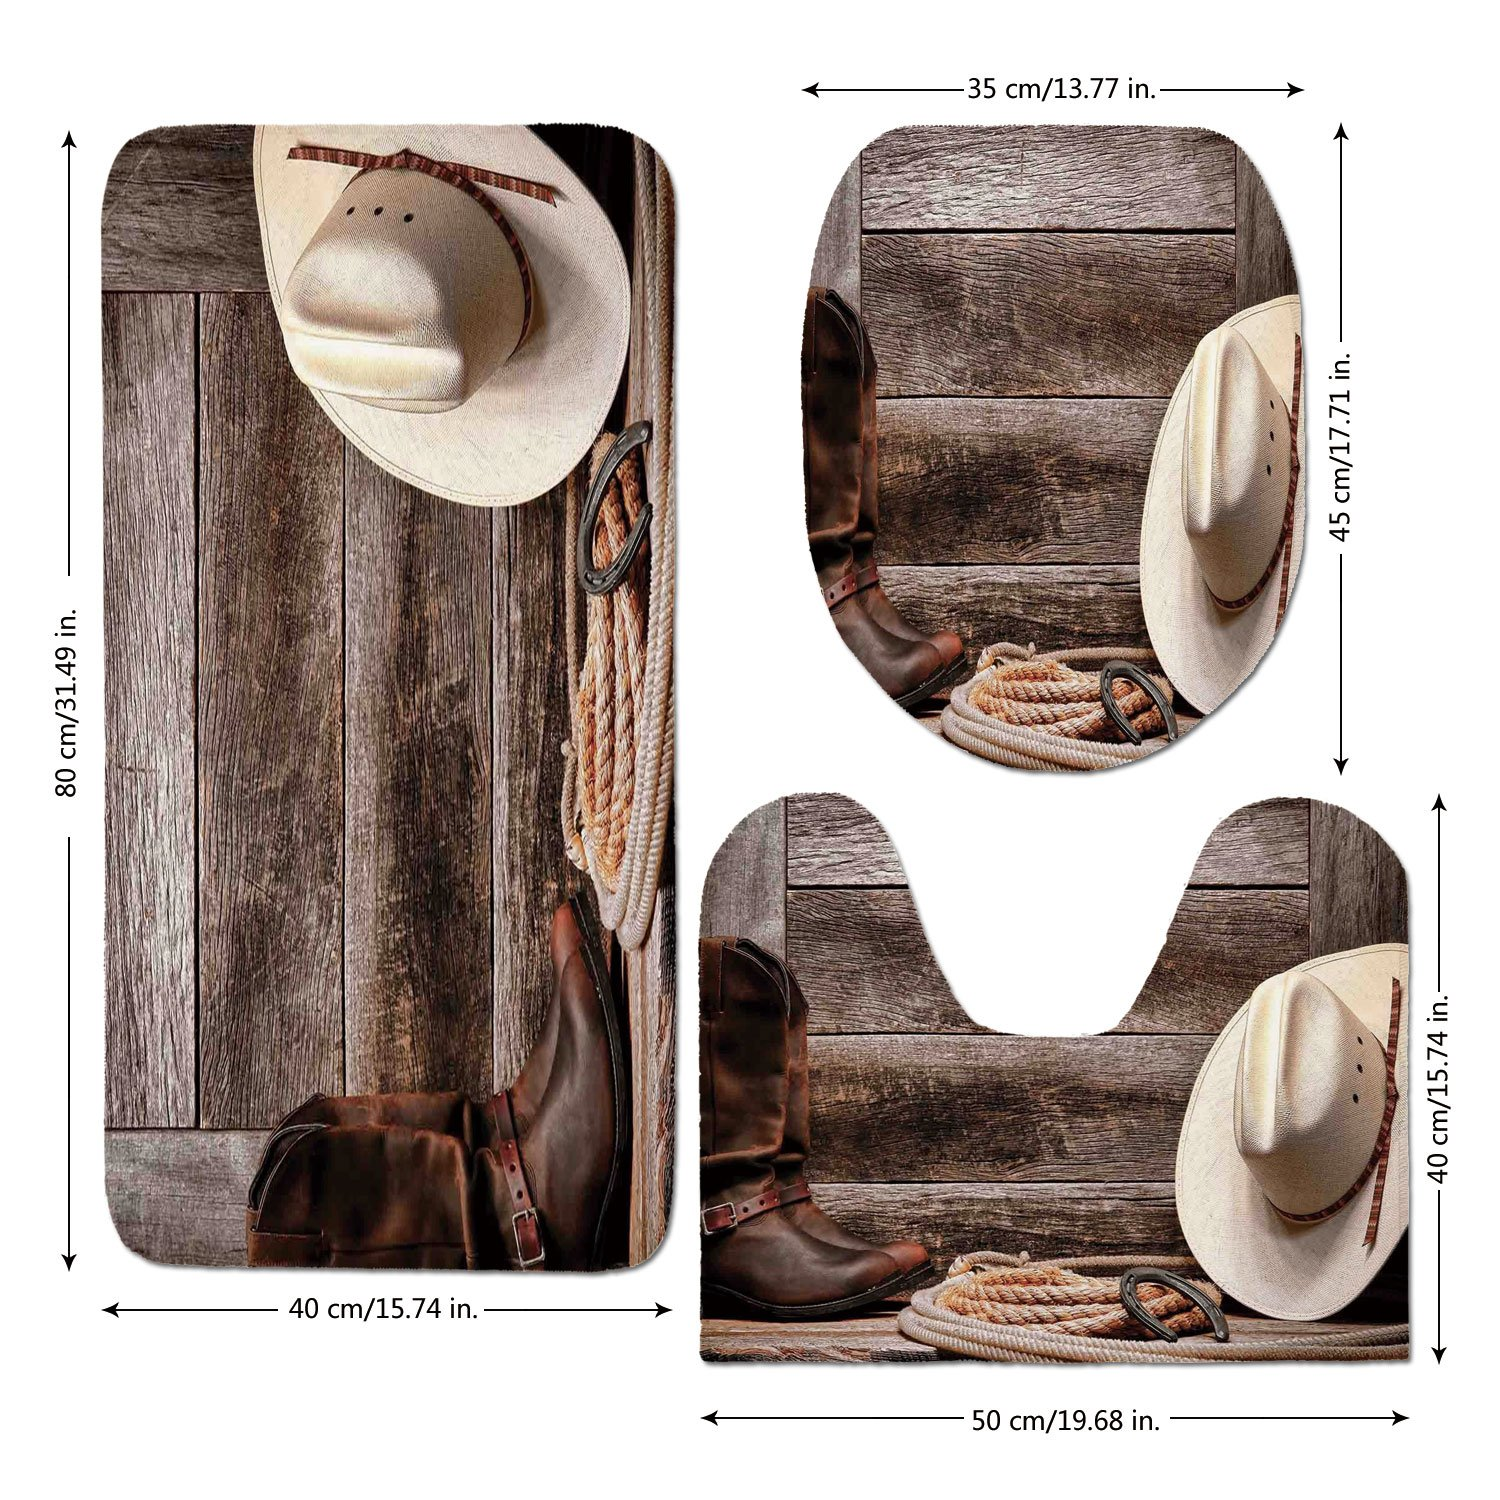 3 Piece Bathroom Mat Set,Western Decor,American West Rodeo White Straw Cowboy Hat with Lariat Leather Boots on Rustic Barn Wood,,Bath Mat,Bathroom Carpet Rug,Non-Slip